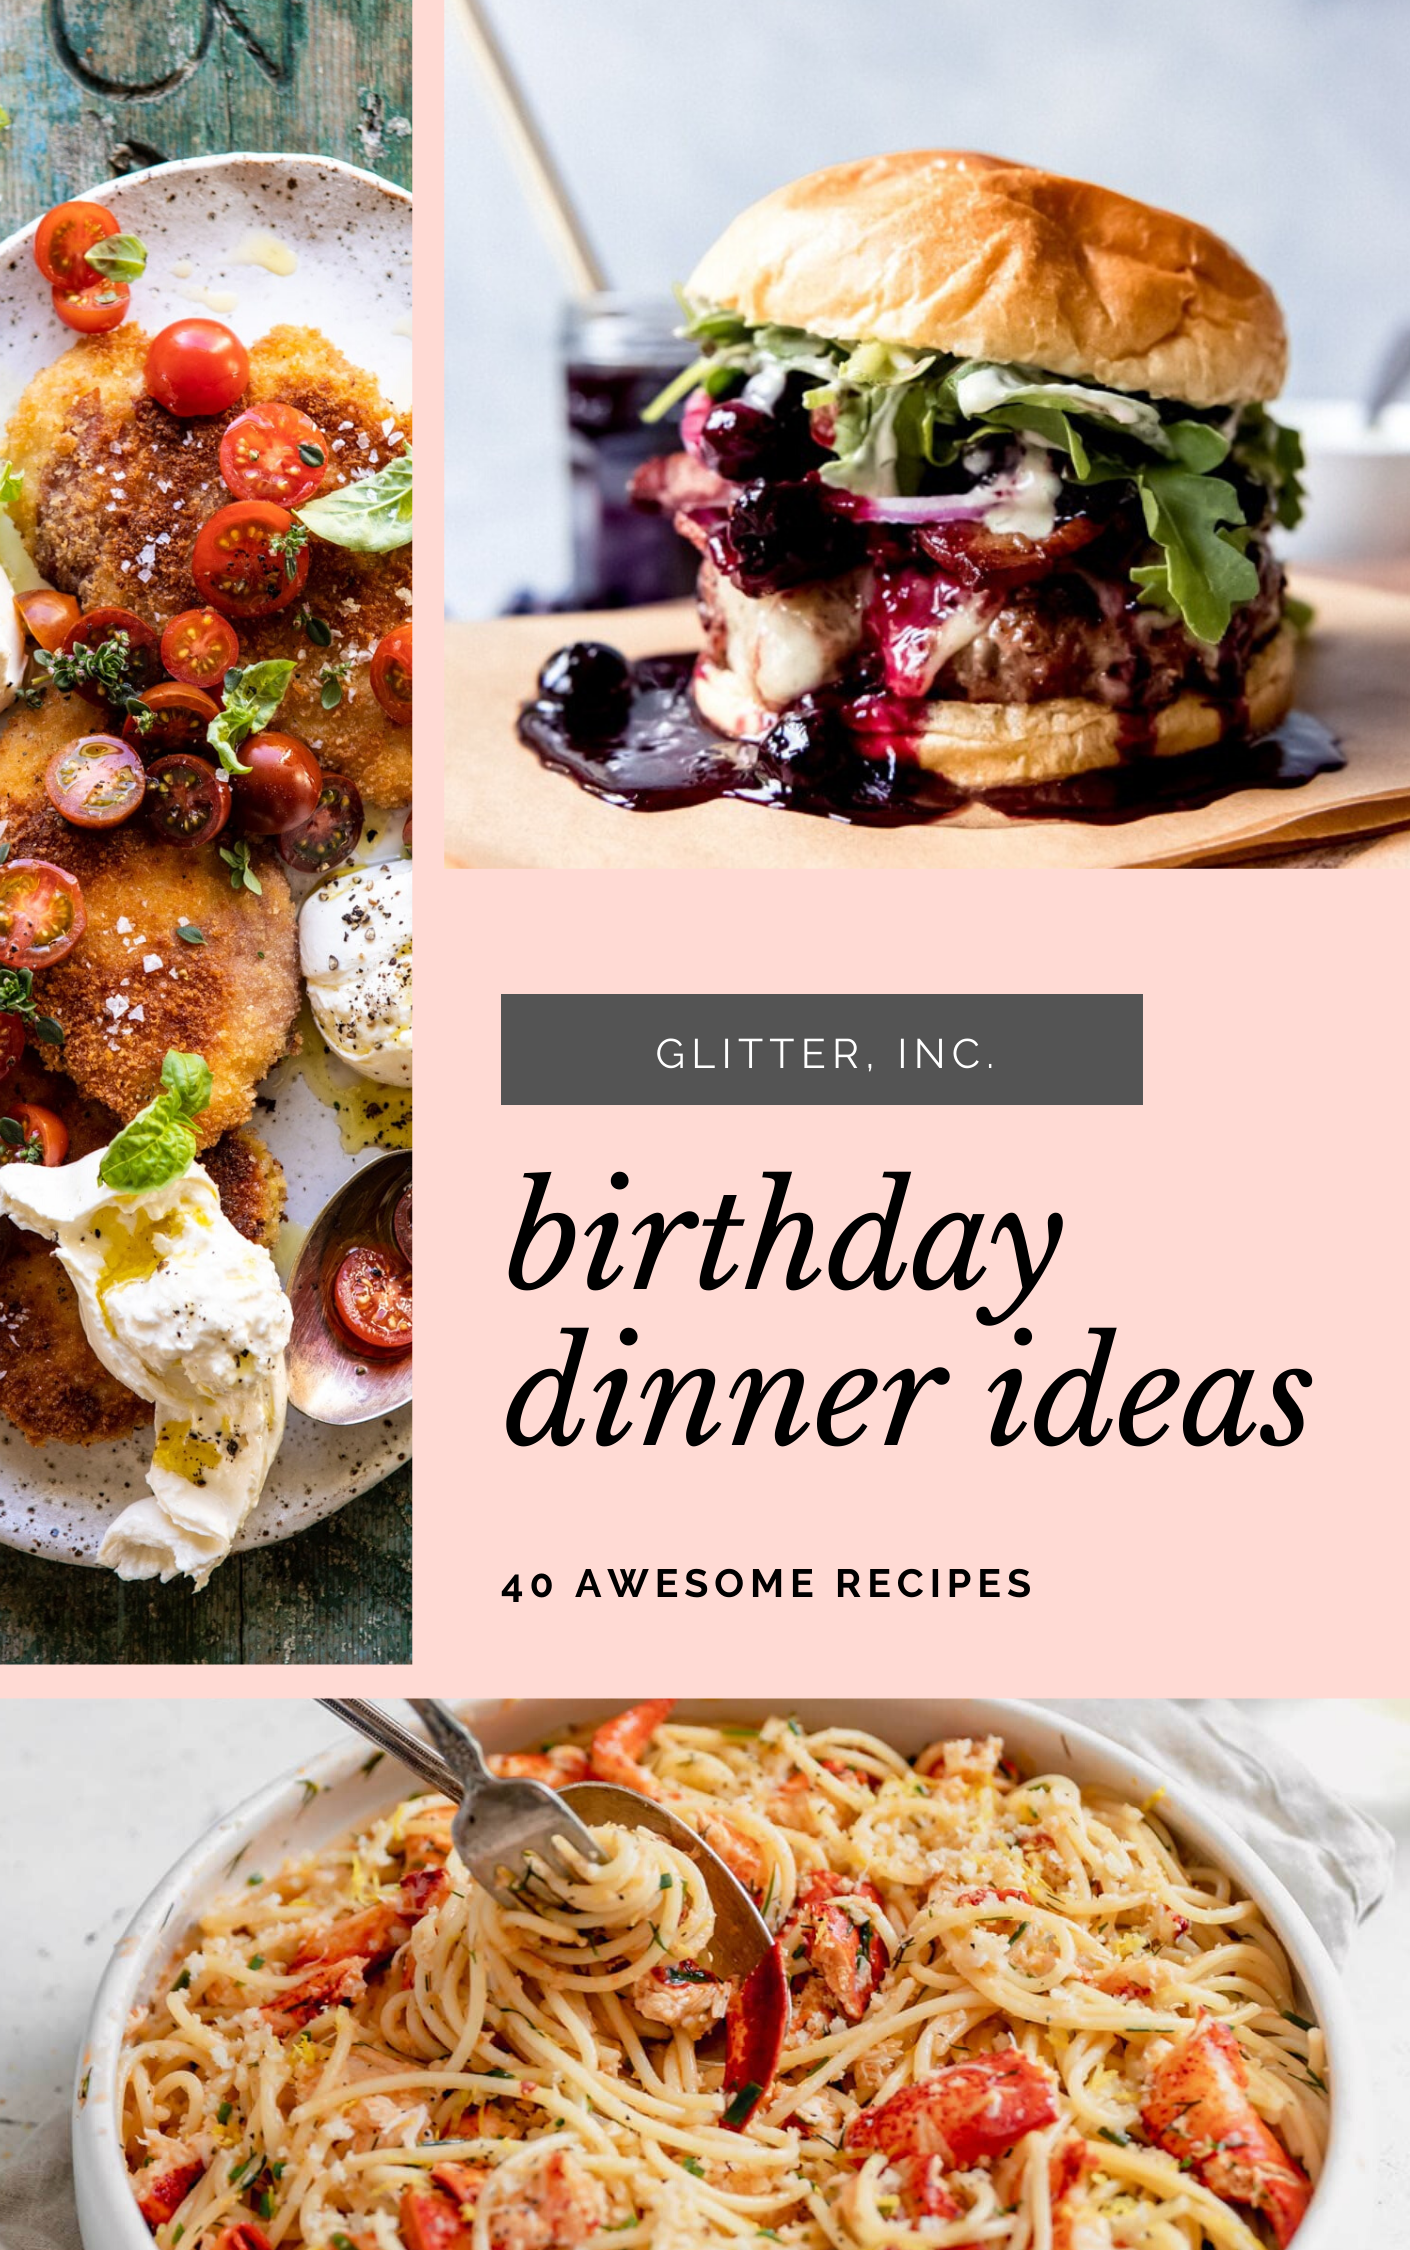 What better way to celebrate a big birthday than with a delicious, home cooked meal? Click through for 40 delicious birthday dinner ideas to celebrate that special someone at home. #recipes | glitterinc.com | @glitterinc